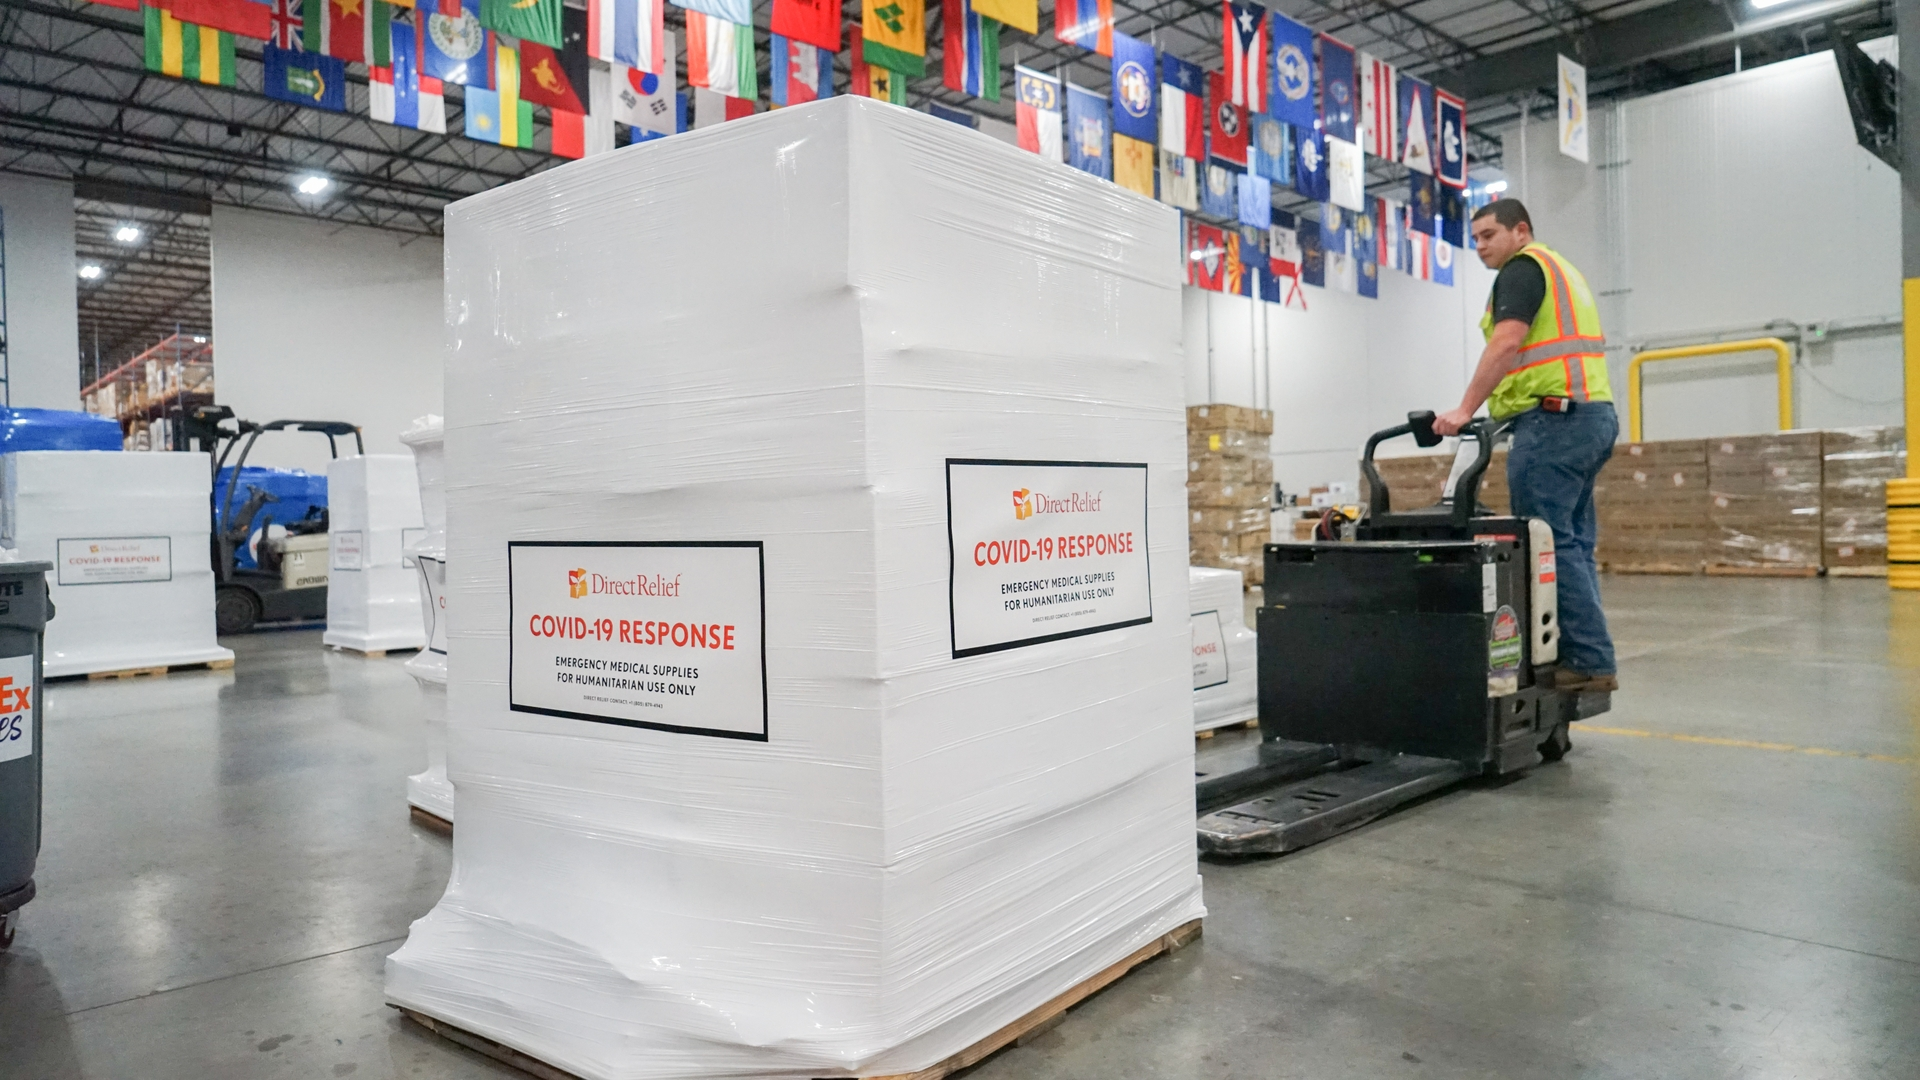 Edison International's $58,000 donation to Direct Relief will help deliver medical and emergency supplies to community clinics and health centers in Southern California.